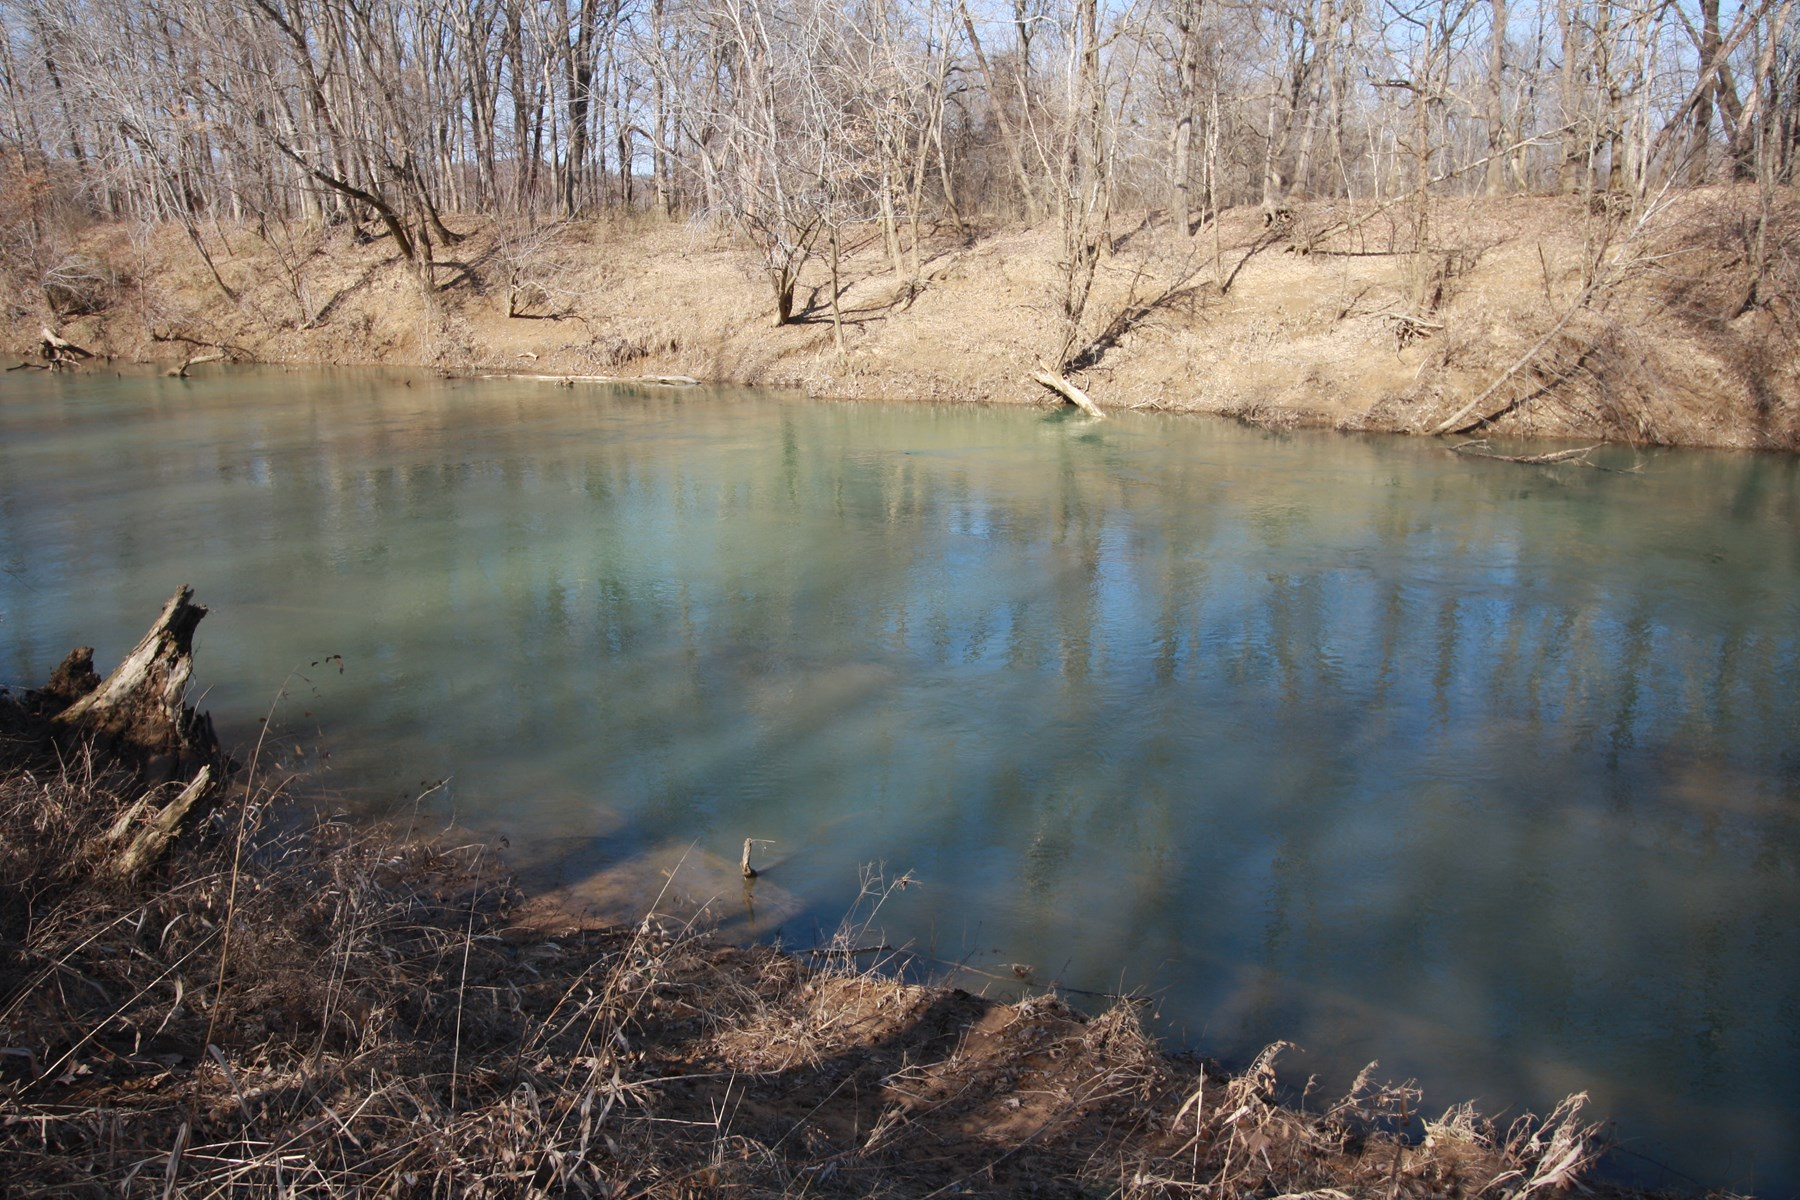 Missouri Riverfront property for sale 64 acres